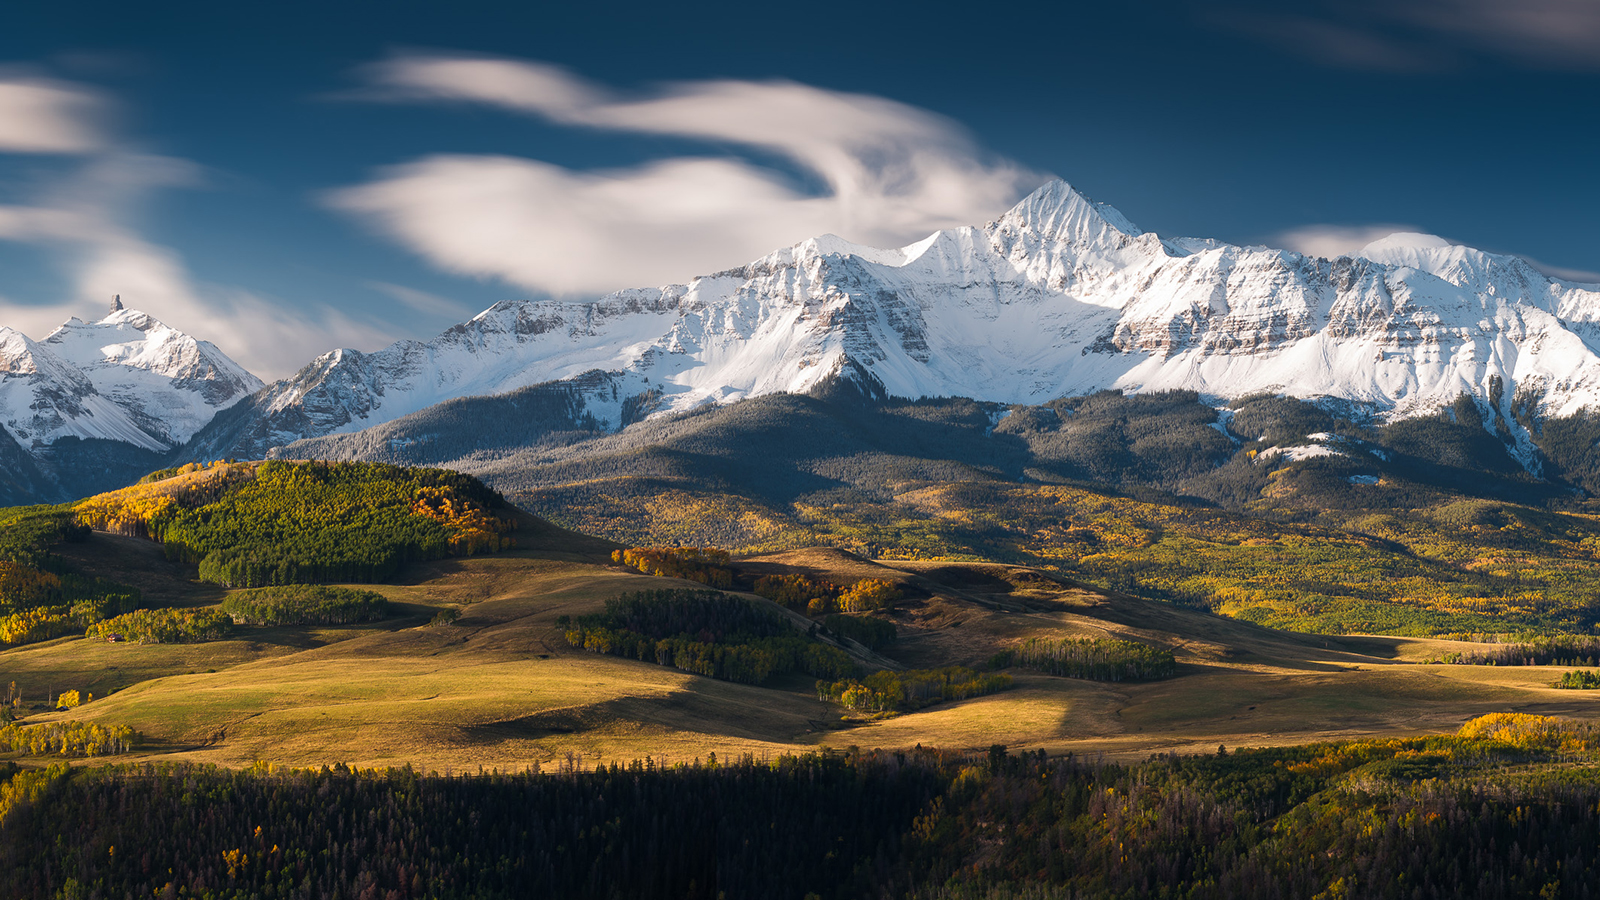 Landscape Photography with Marc Muench